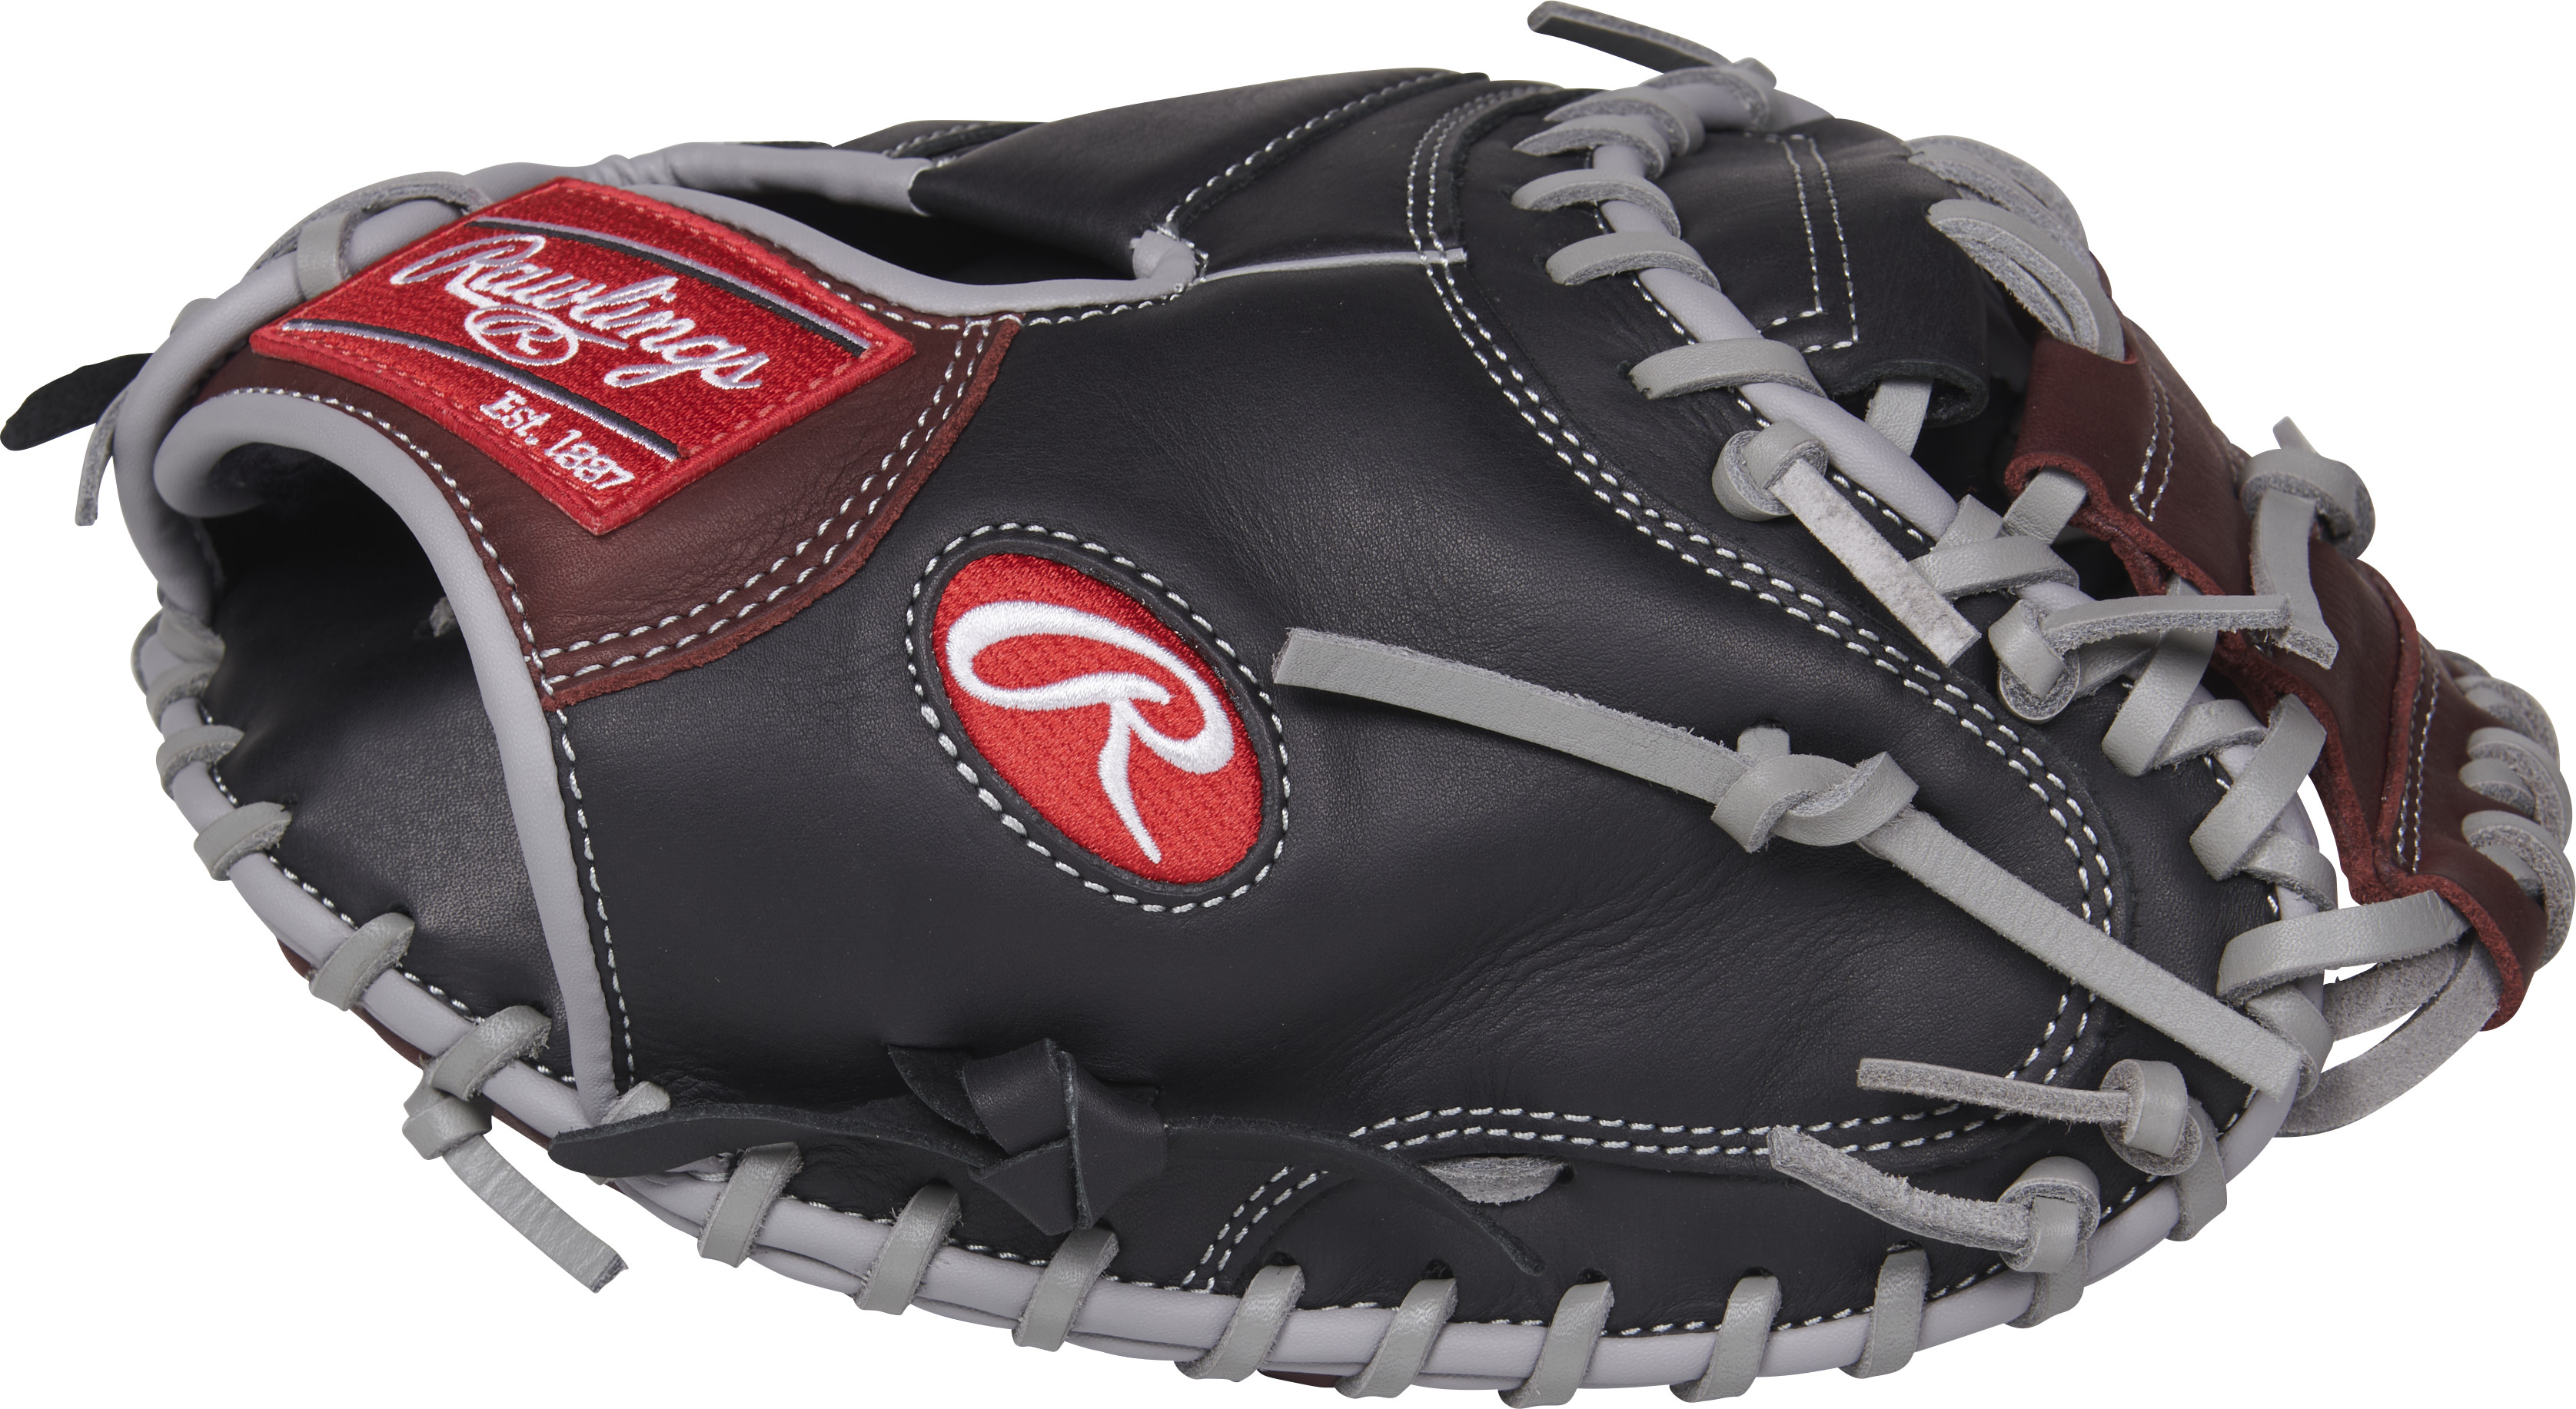 http://www.bestbatdeals.com/images/gloves/rawlings/R9CM325BSG-3.jpg